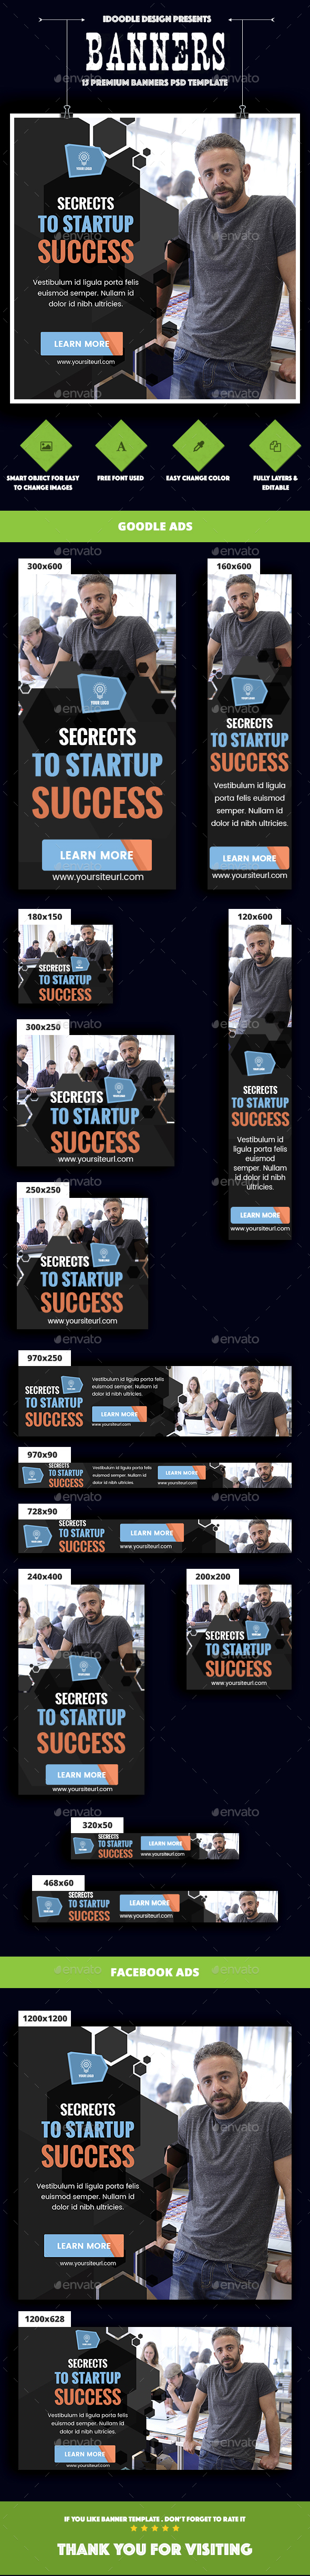 Multipurpose, Business, Startup Banners Ads - Banners & Ads Web Elements